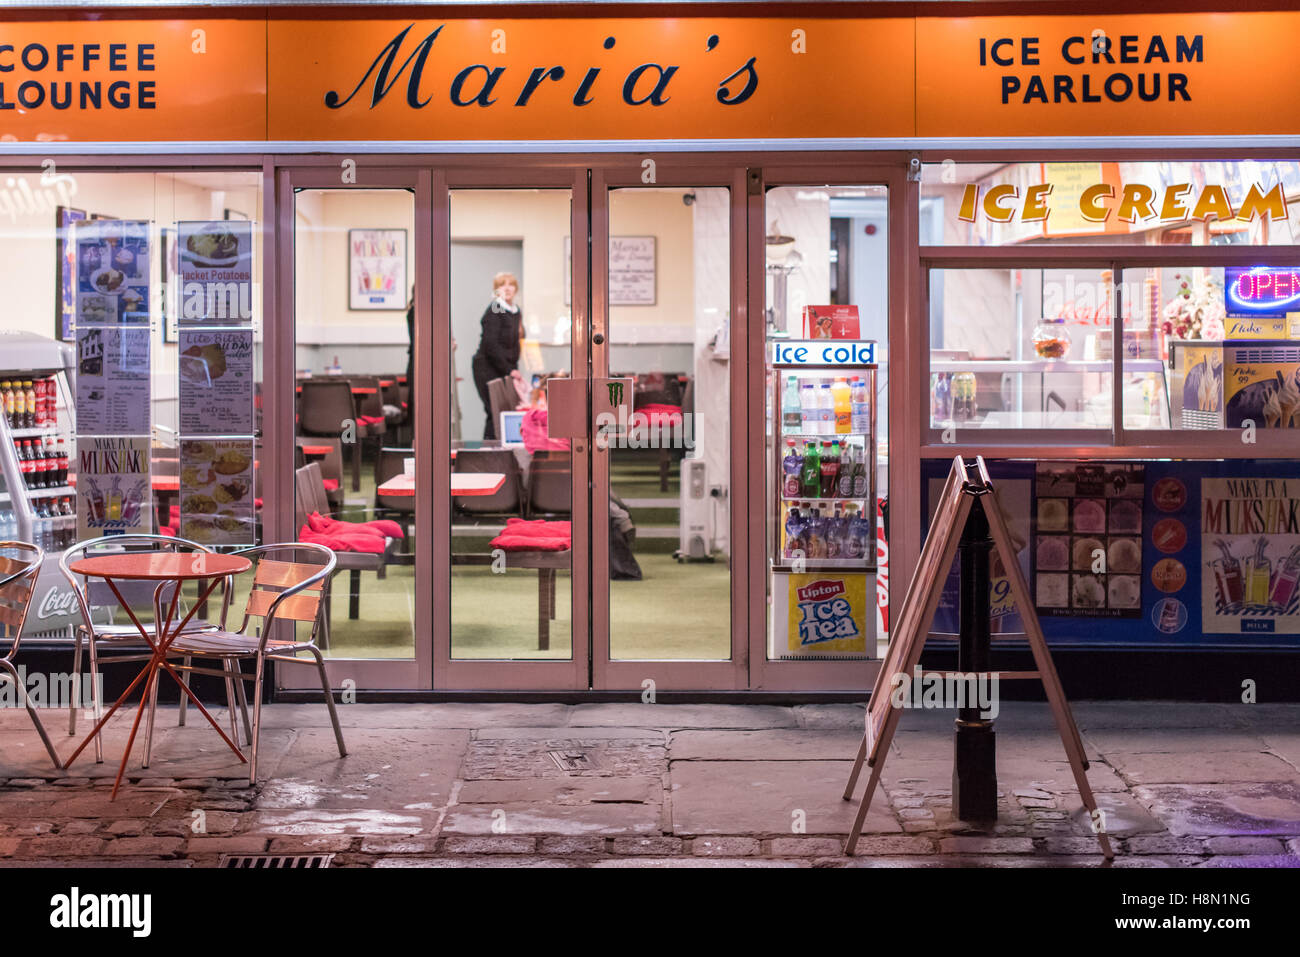 Looking through the window of a cafe at night on Canterbury High Street. A mature woman can be seen inside the ice - Stock Image